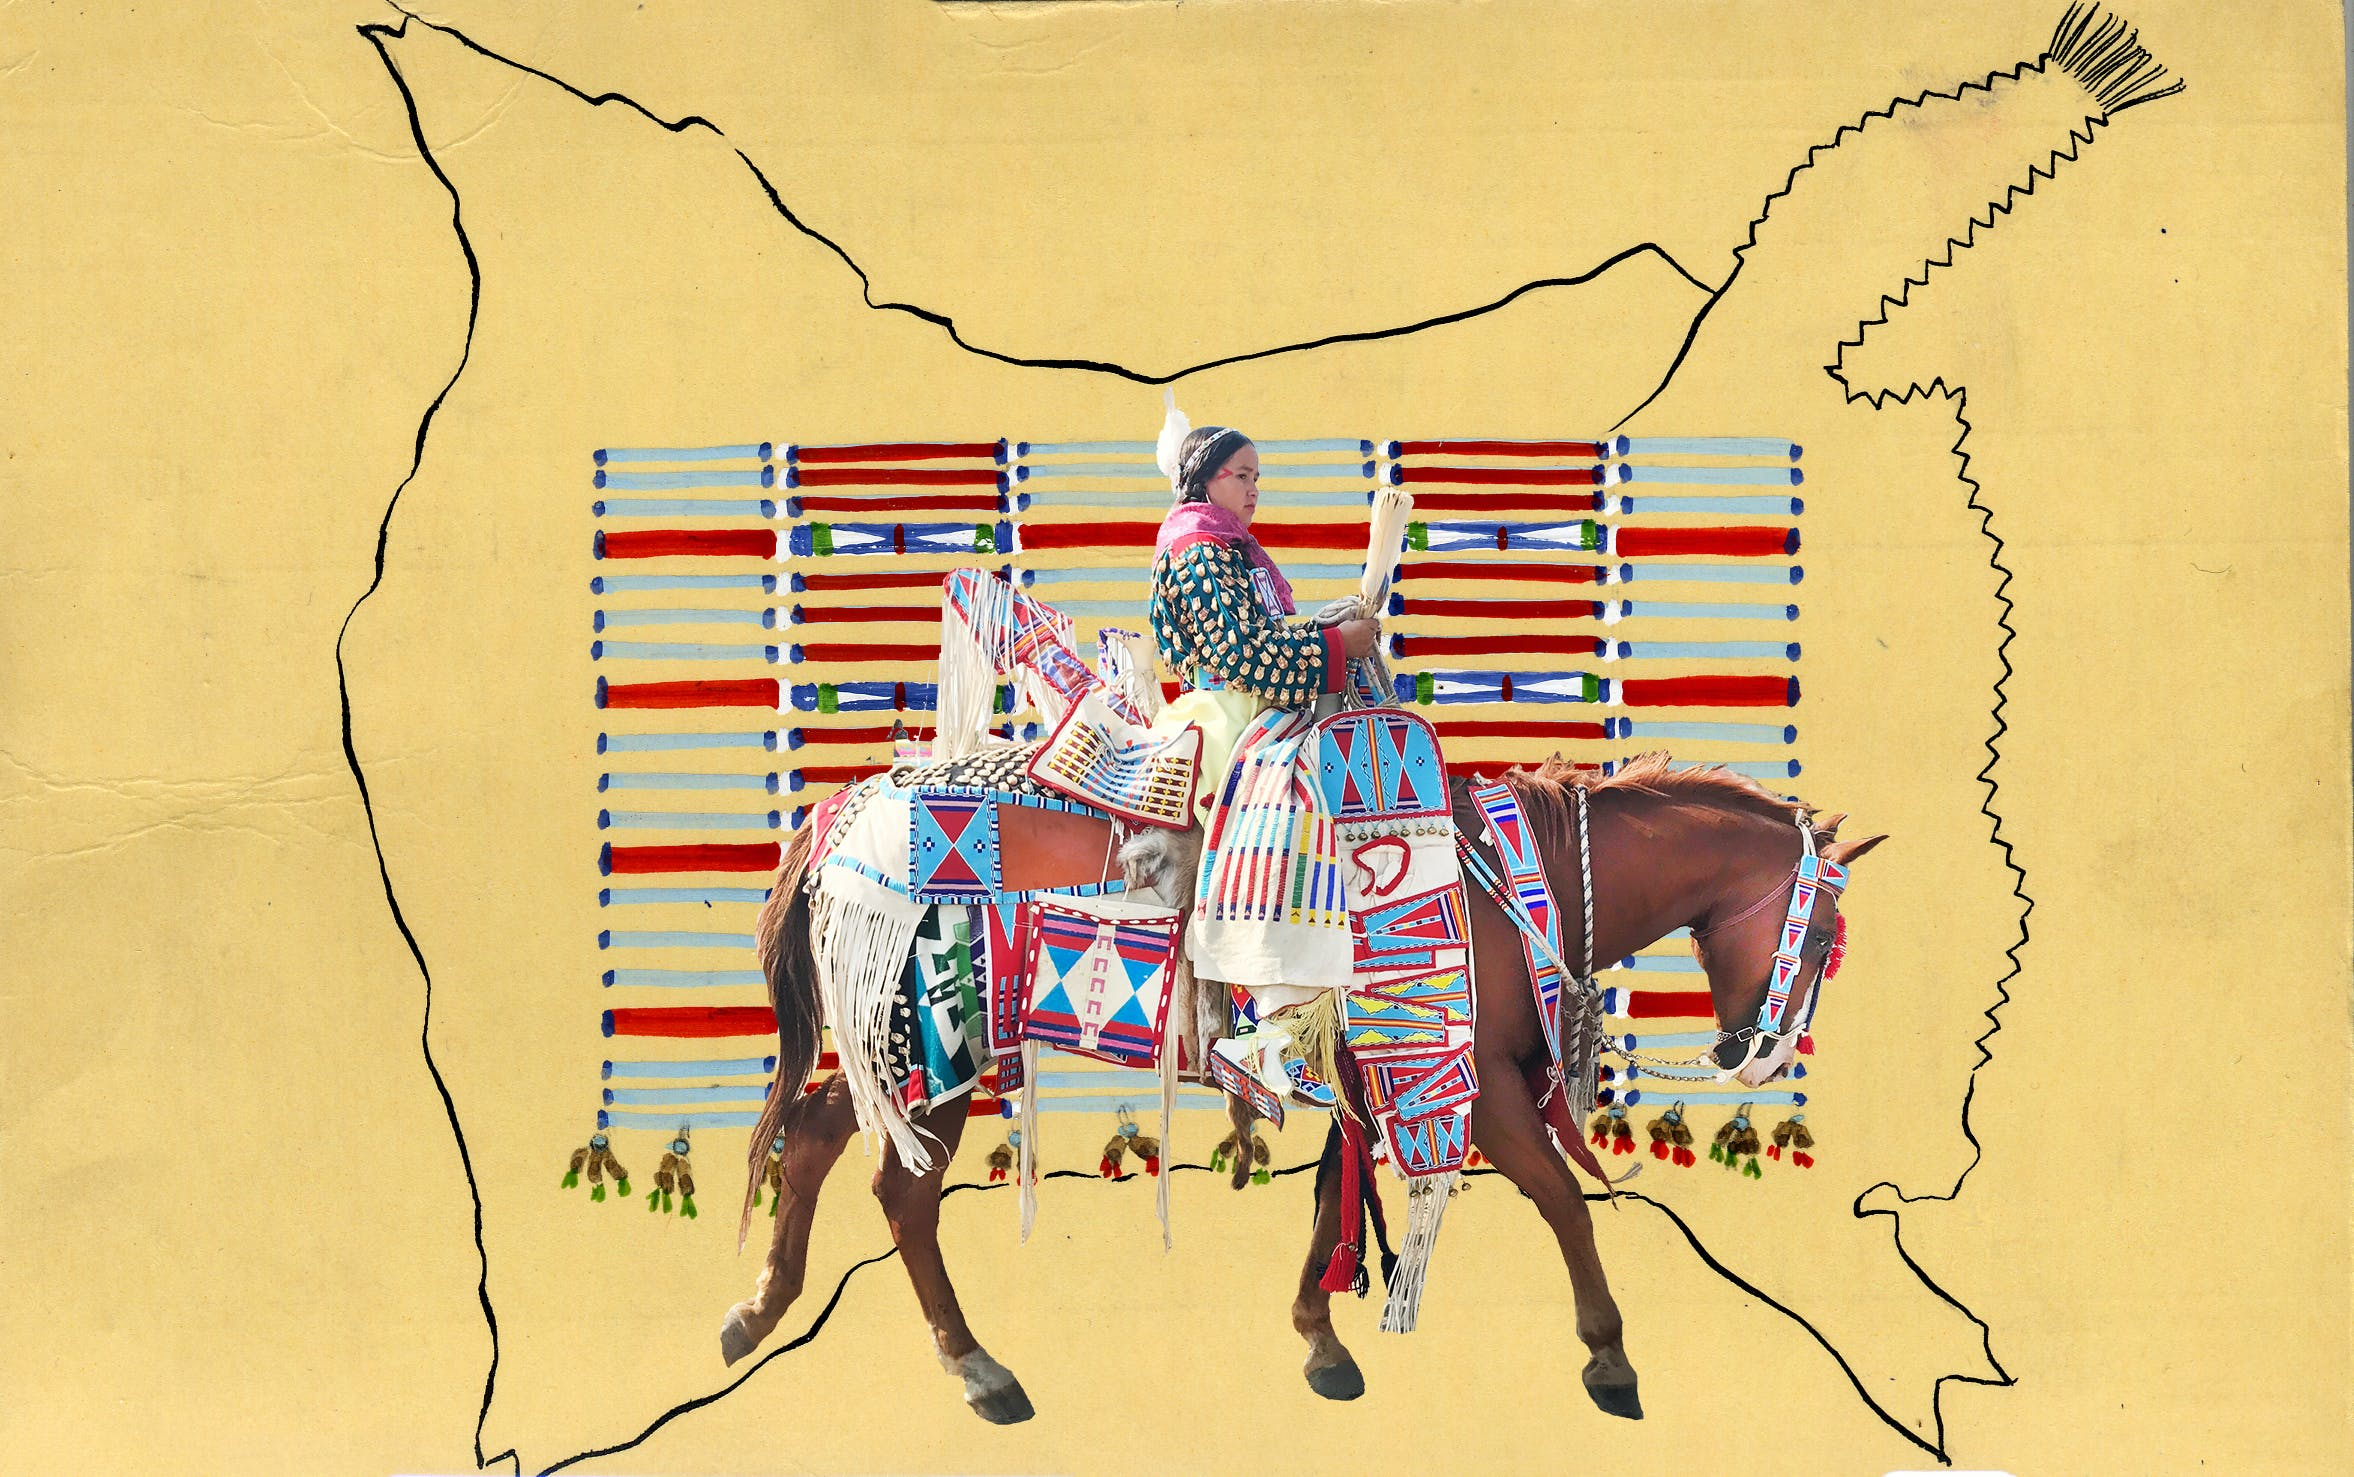 Native american art of a Native American on a brown horse.